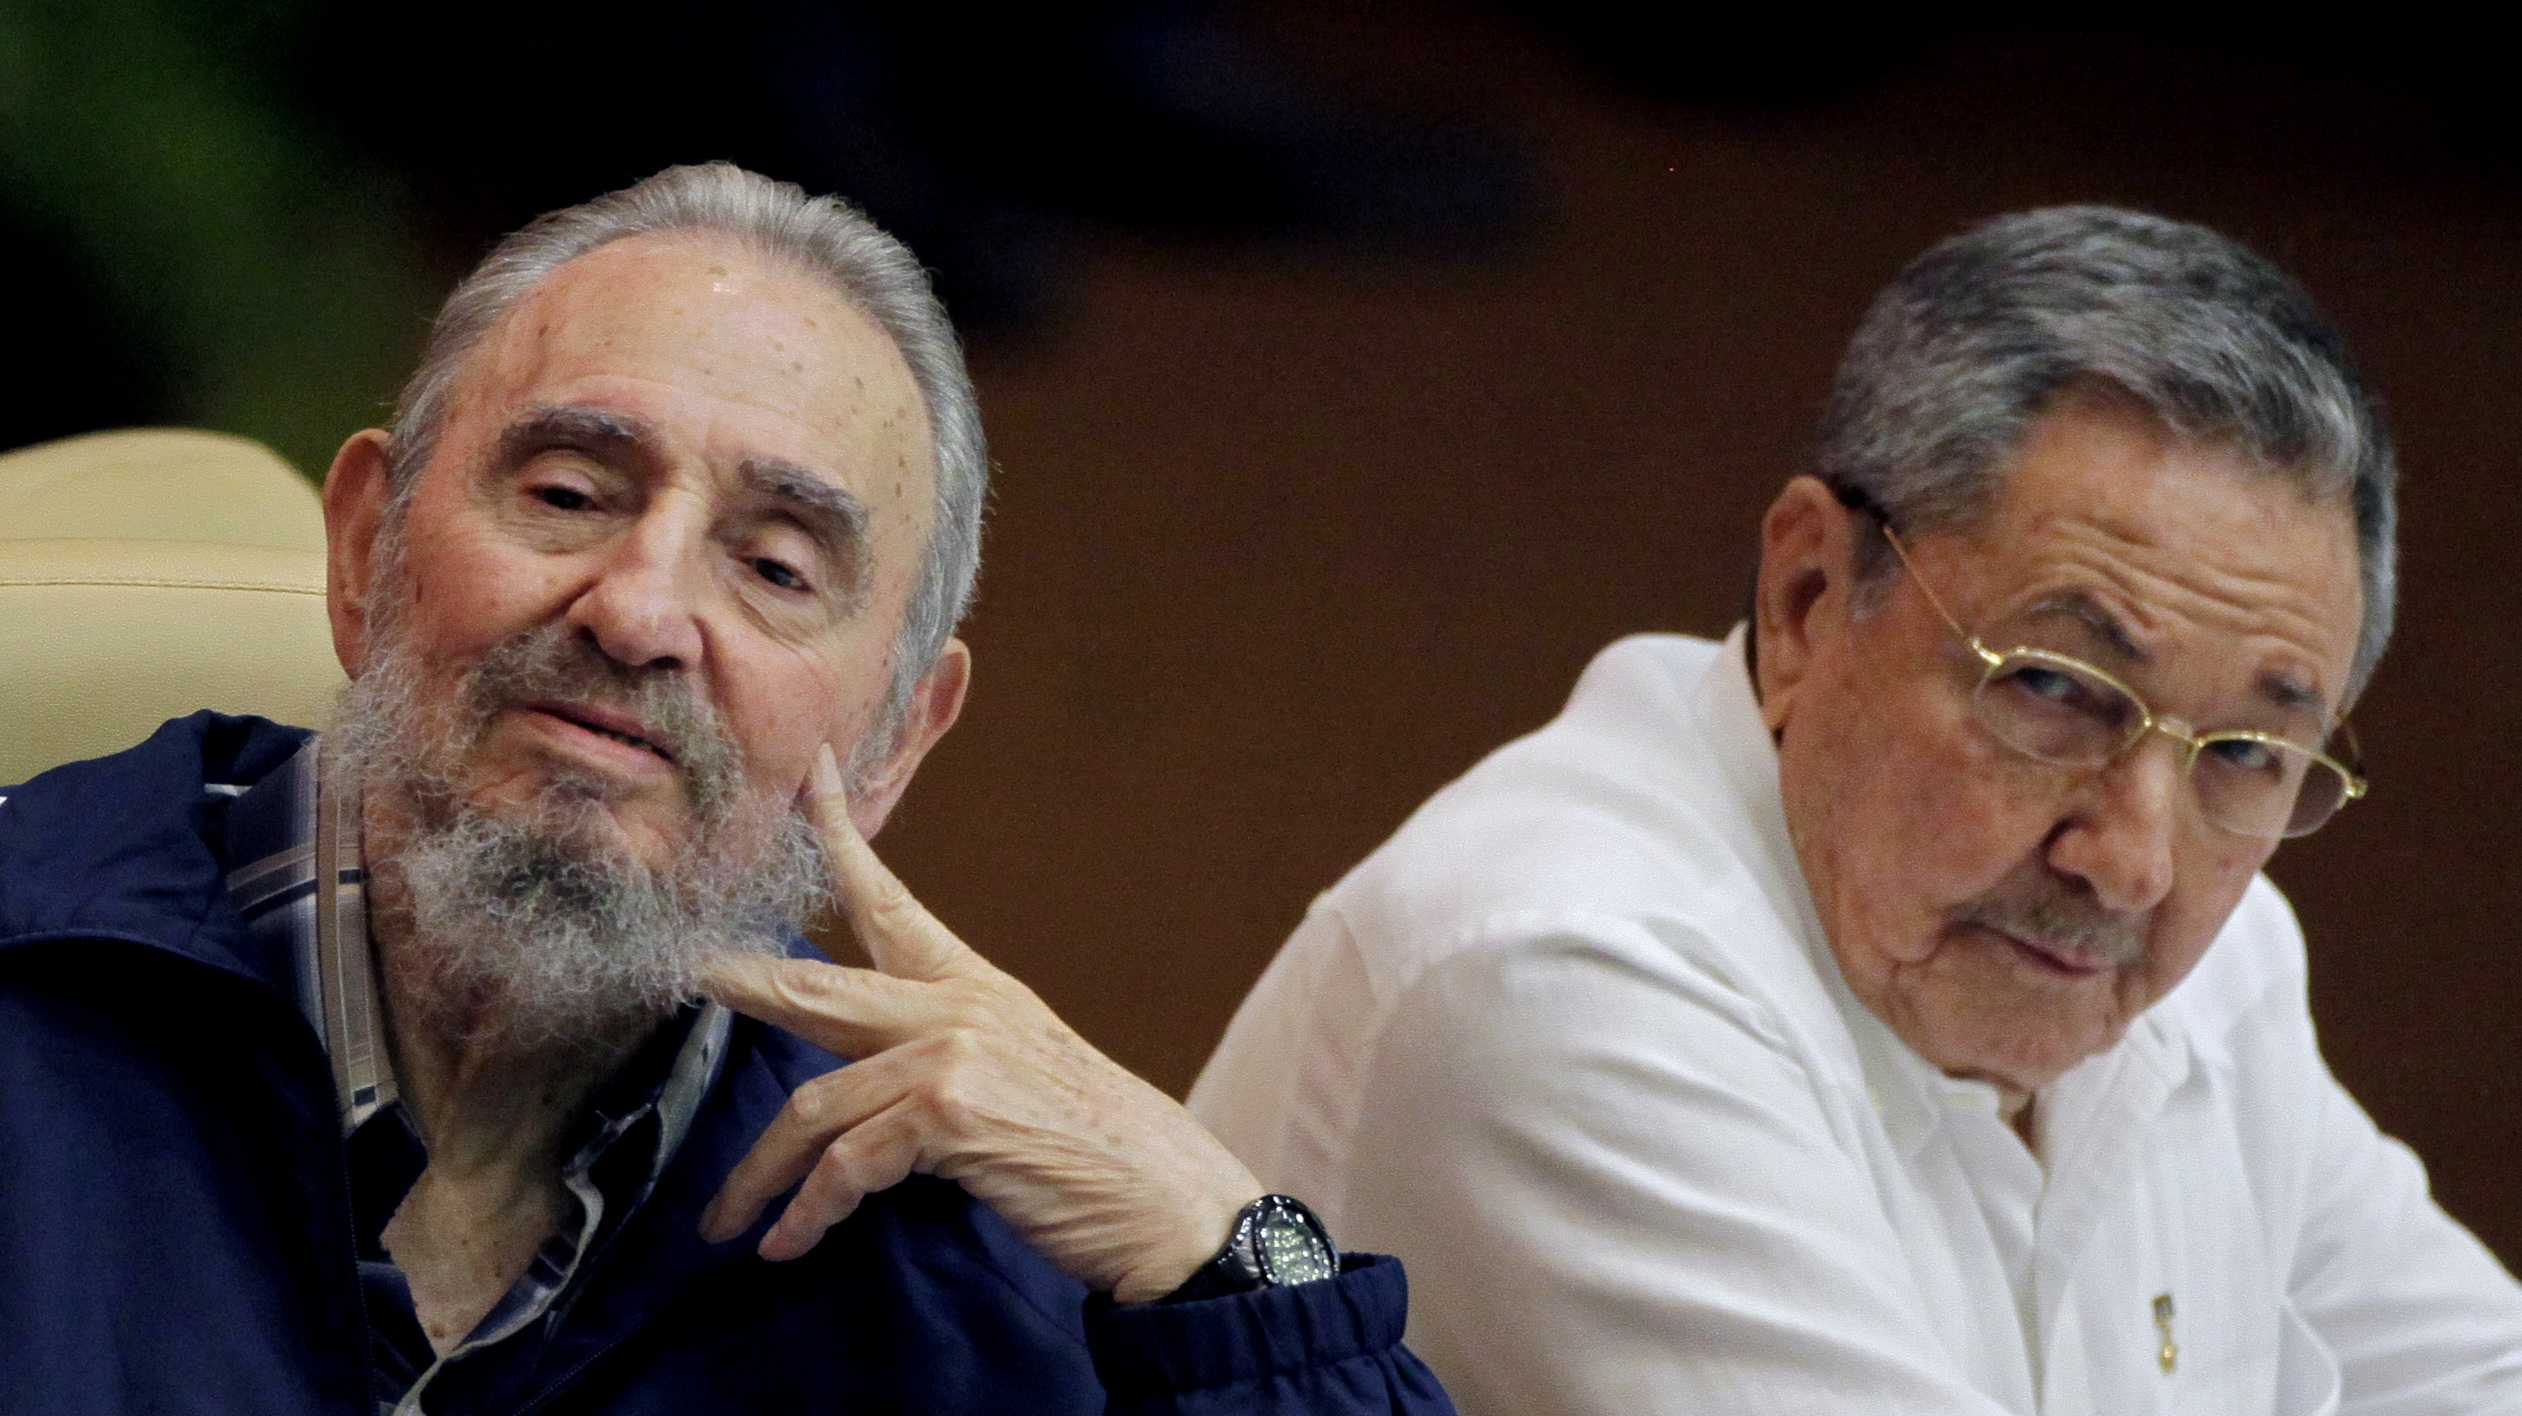 Fidel Castro, left, and Cuba's President Raul Castro attend the 6th Communist Party Congress in Havana, Cuba, Tuesday April 19, 2011. Raul was named first secretary of Cuba's Communist Party on Tuesday, with Fidel not included in the leadership for the first time since the party's creation 46 years ago.